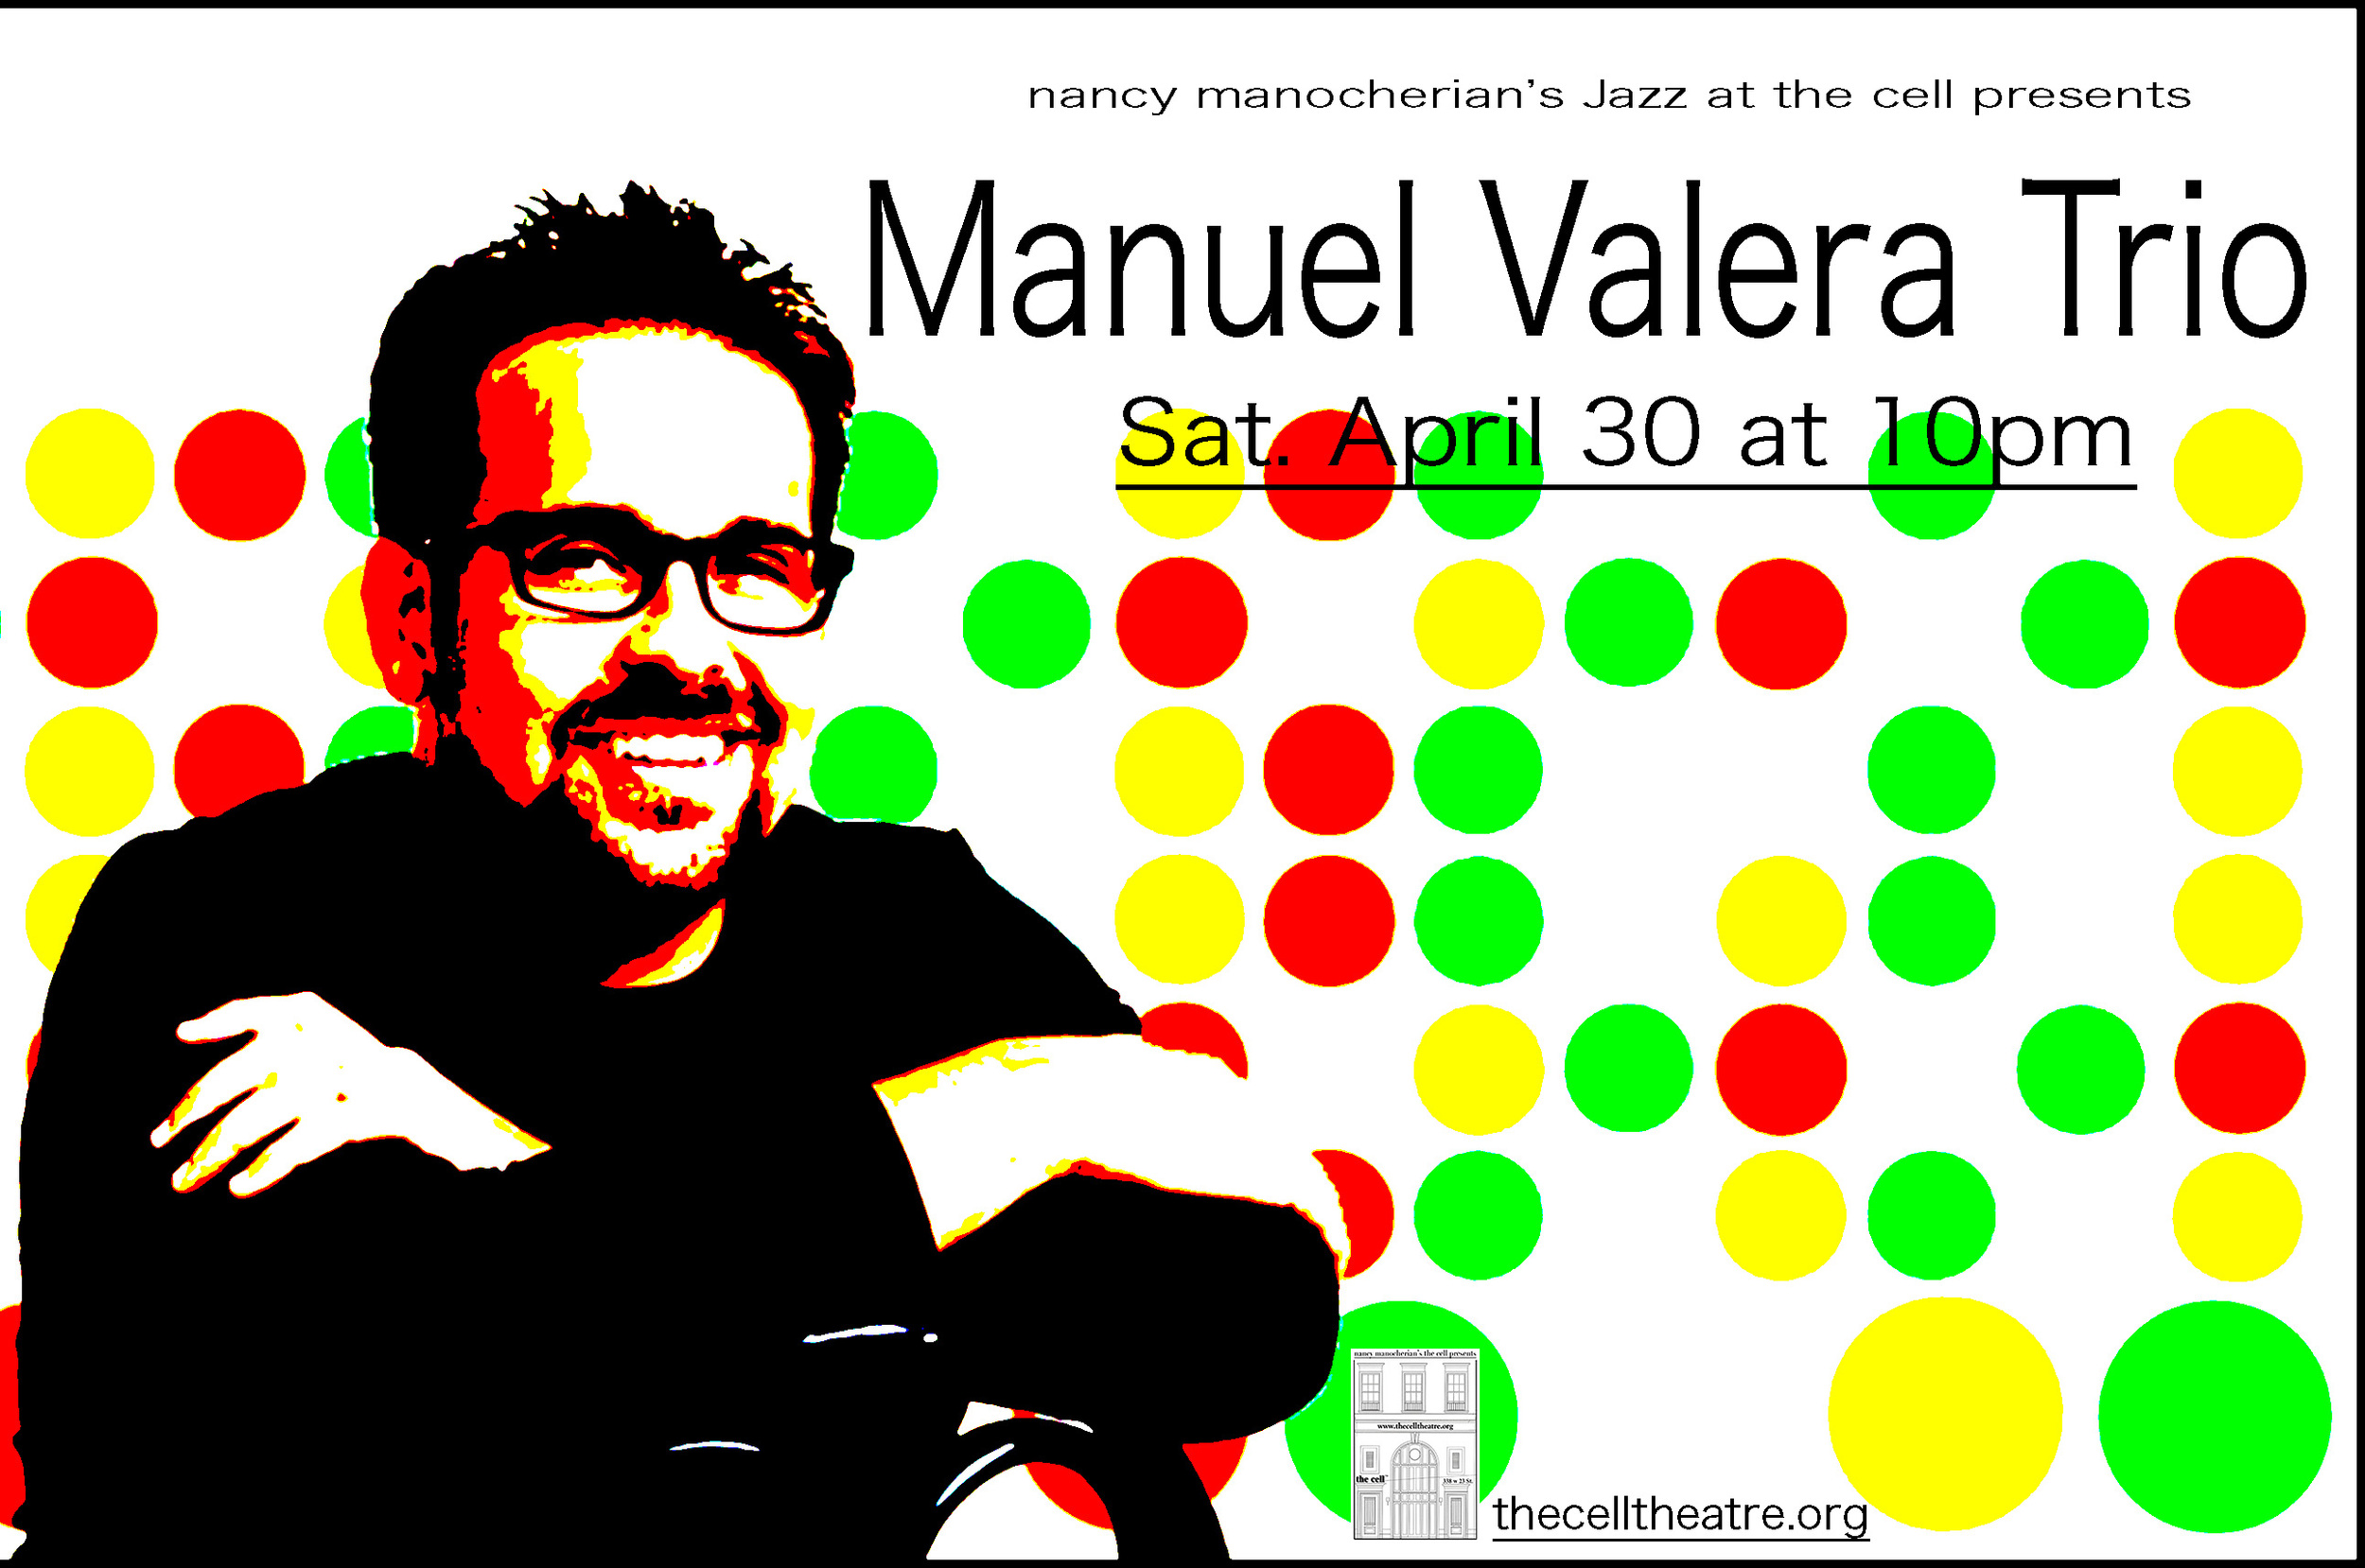 Manuel Valera Trio  The music is a refreshing take on Cuban music as well as interpretations of jazz standards and previously-recorded original compositions by Valera. The trio fuses elements of straight-ahead, Latin Jazz and R&B to create a very personal sound with a broad appeal.   The trio includes bassist   Linda Oh   and drummer EJ Strickland.